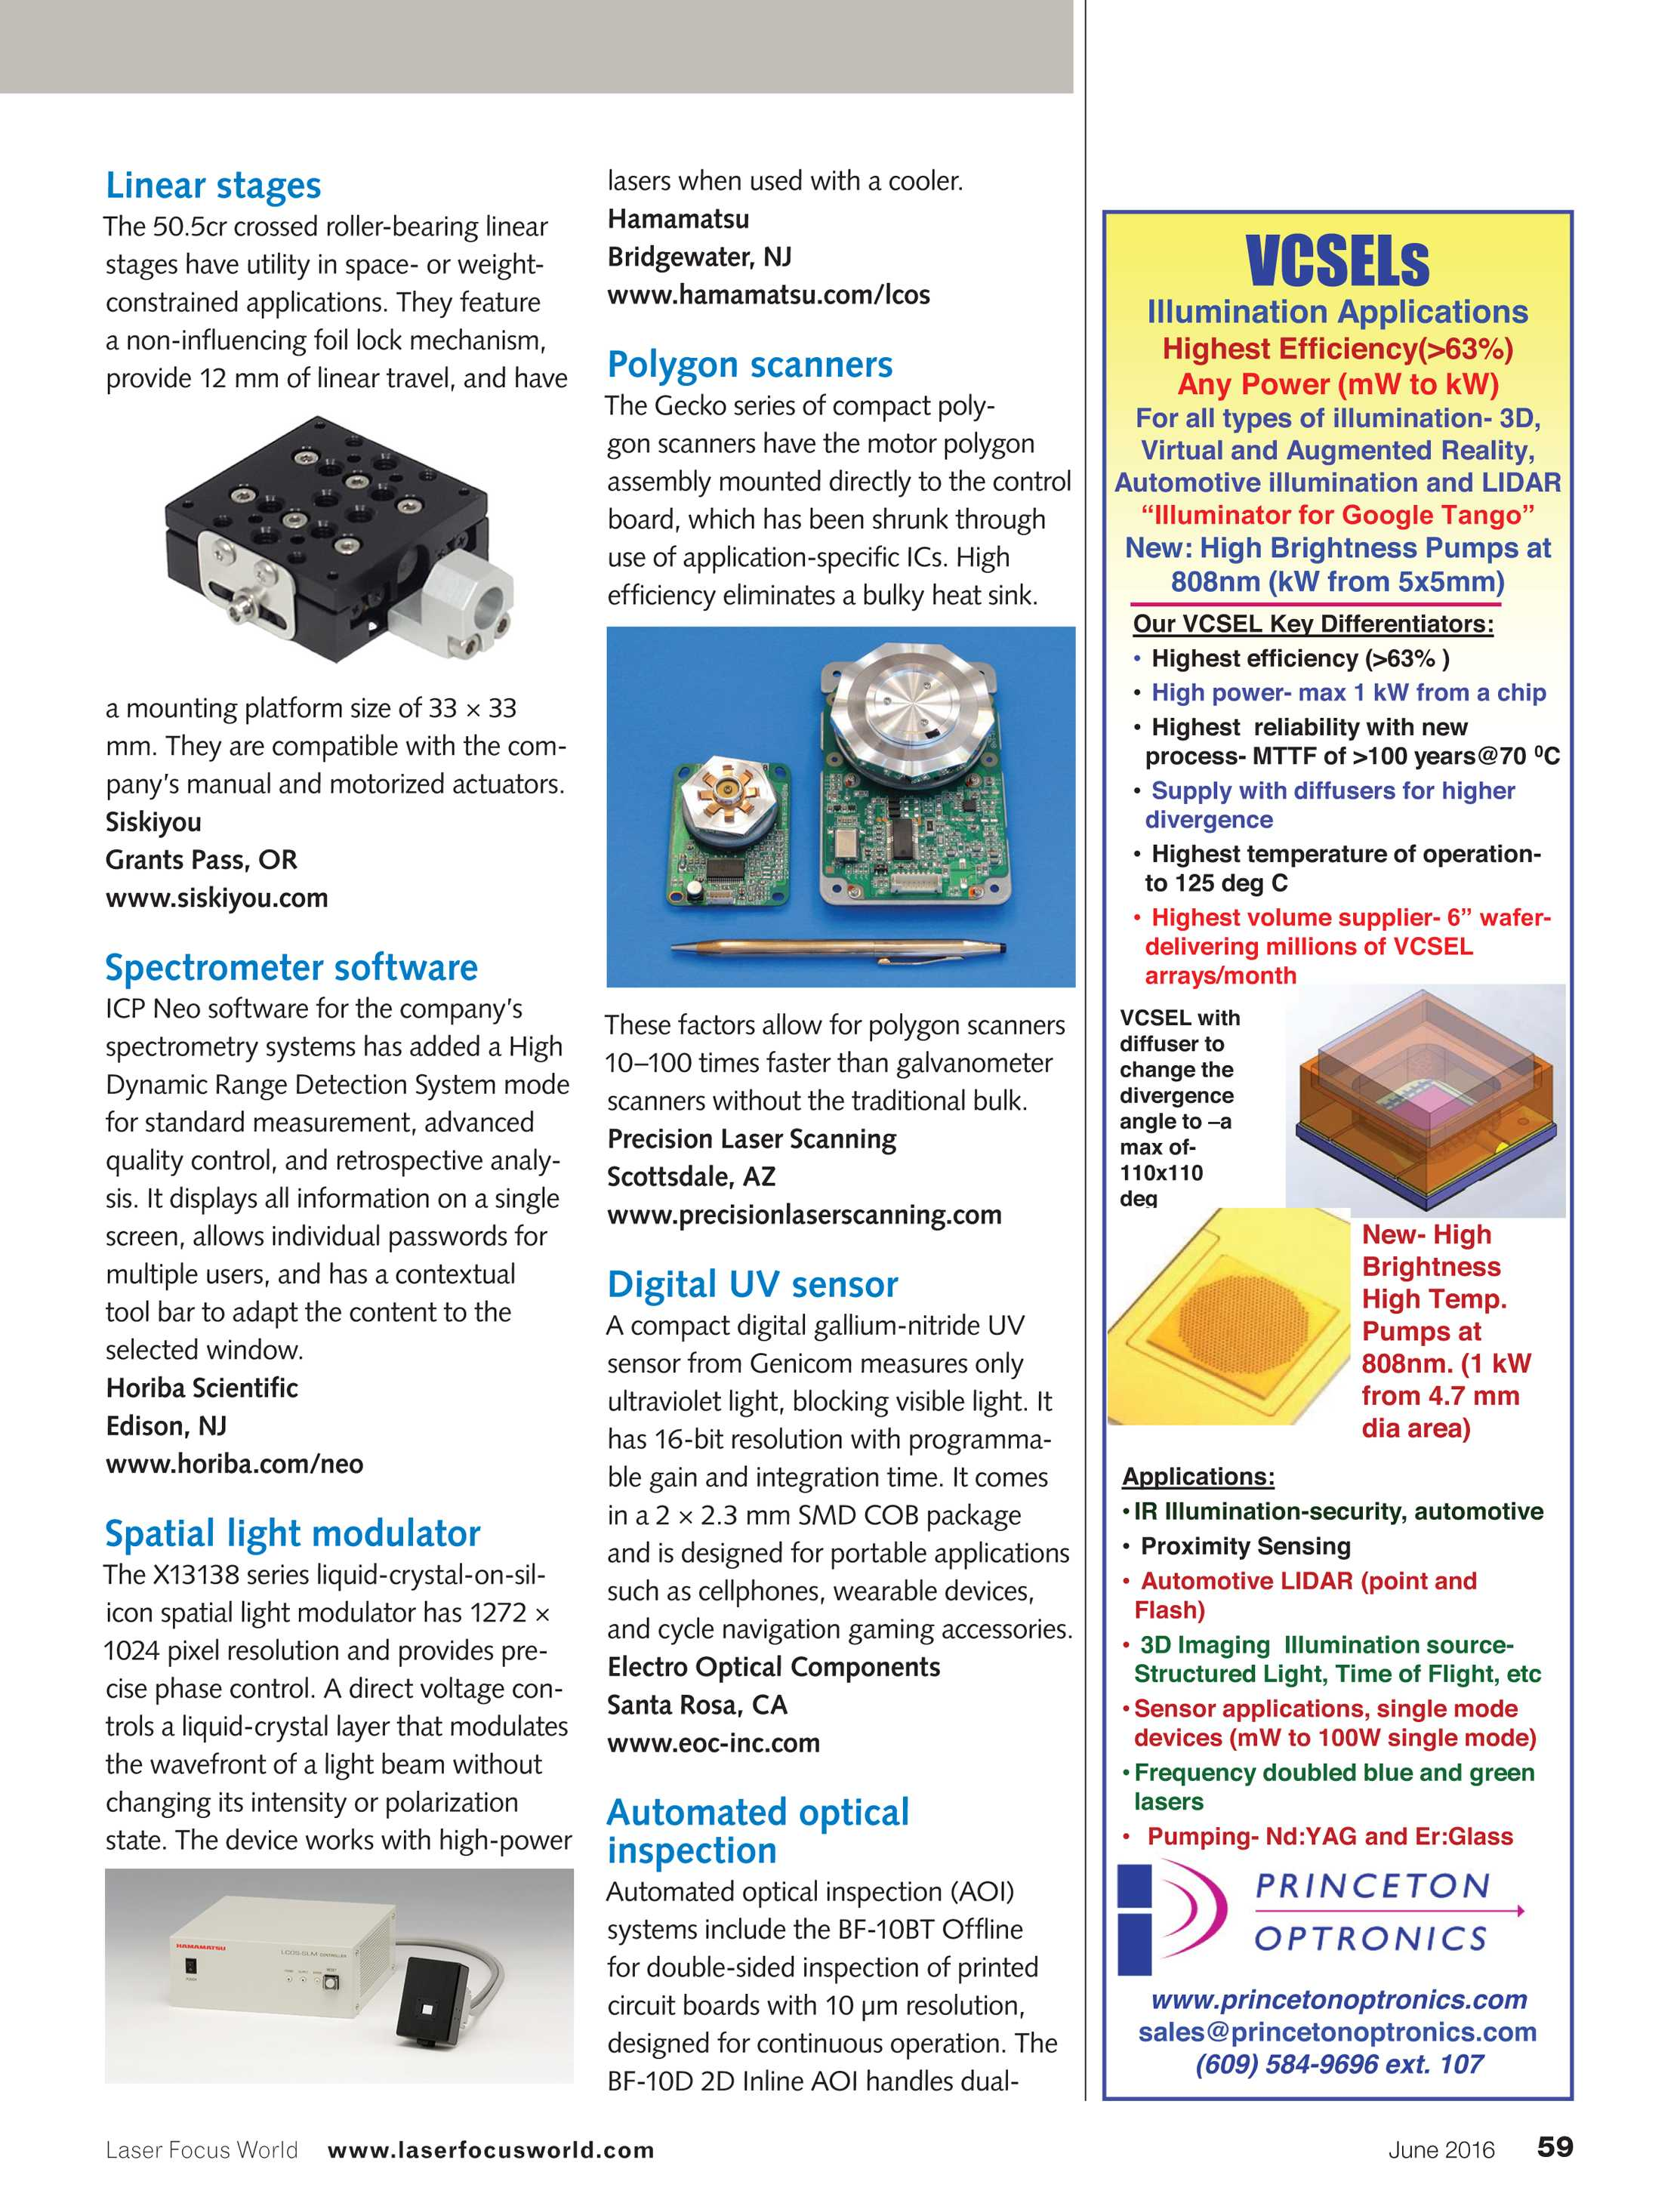 Laser Focus World June 2016 Page 59 Cutting Machine For Printed Circuit Boards With Inline Measuring